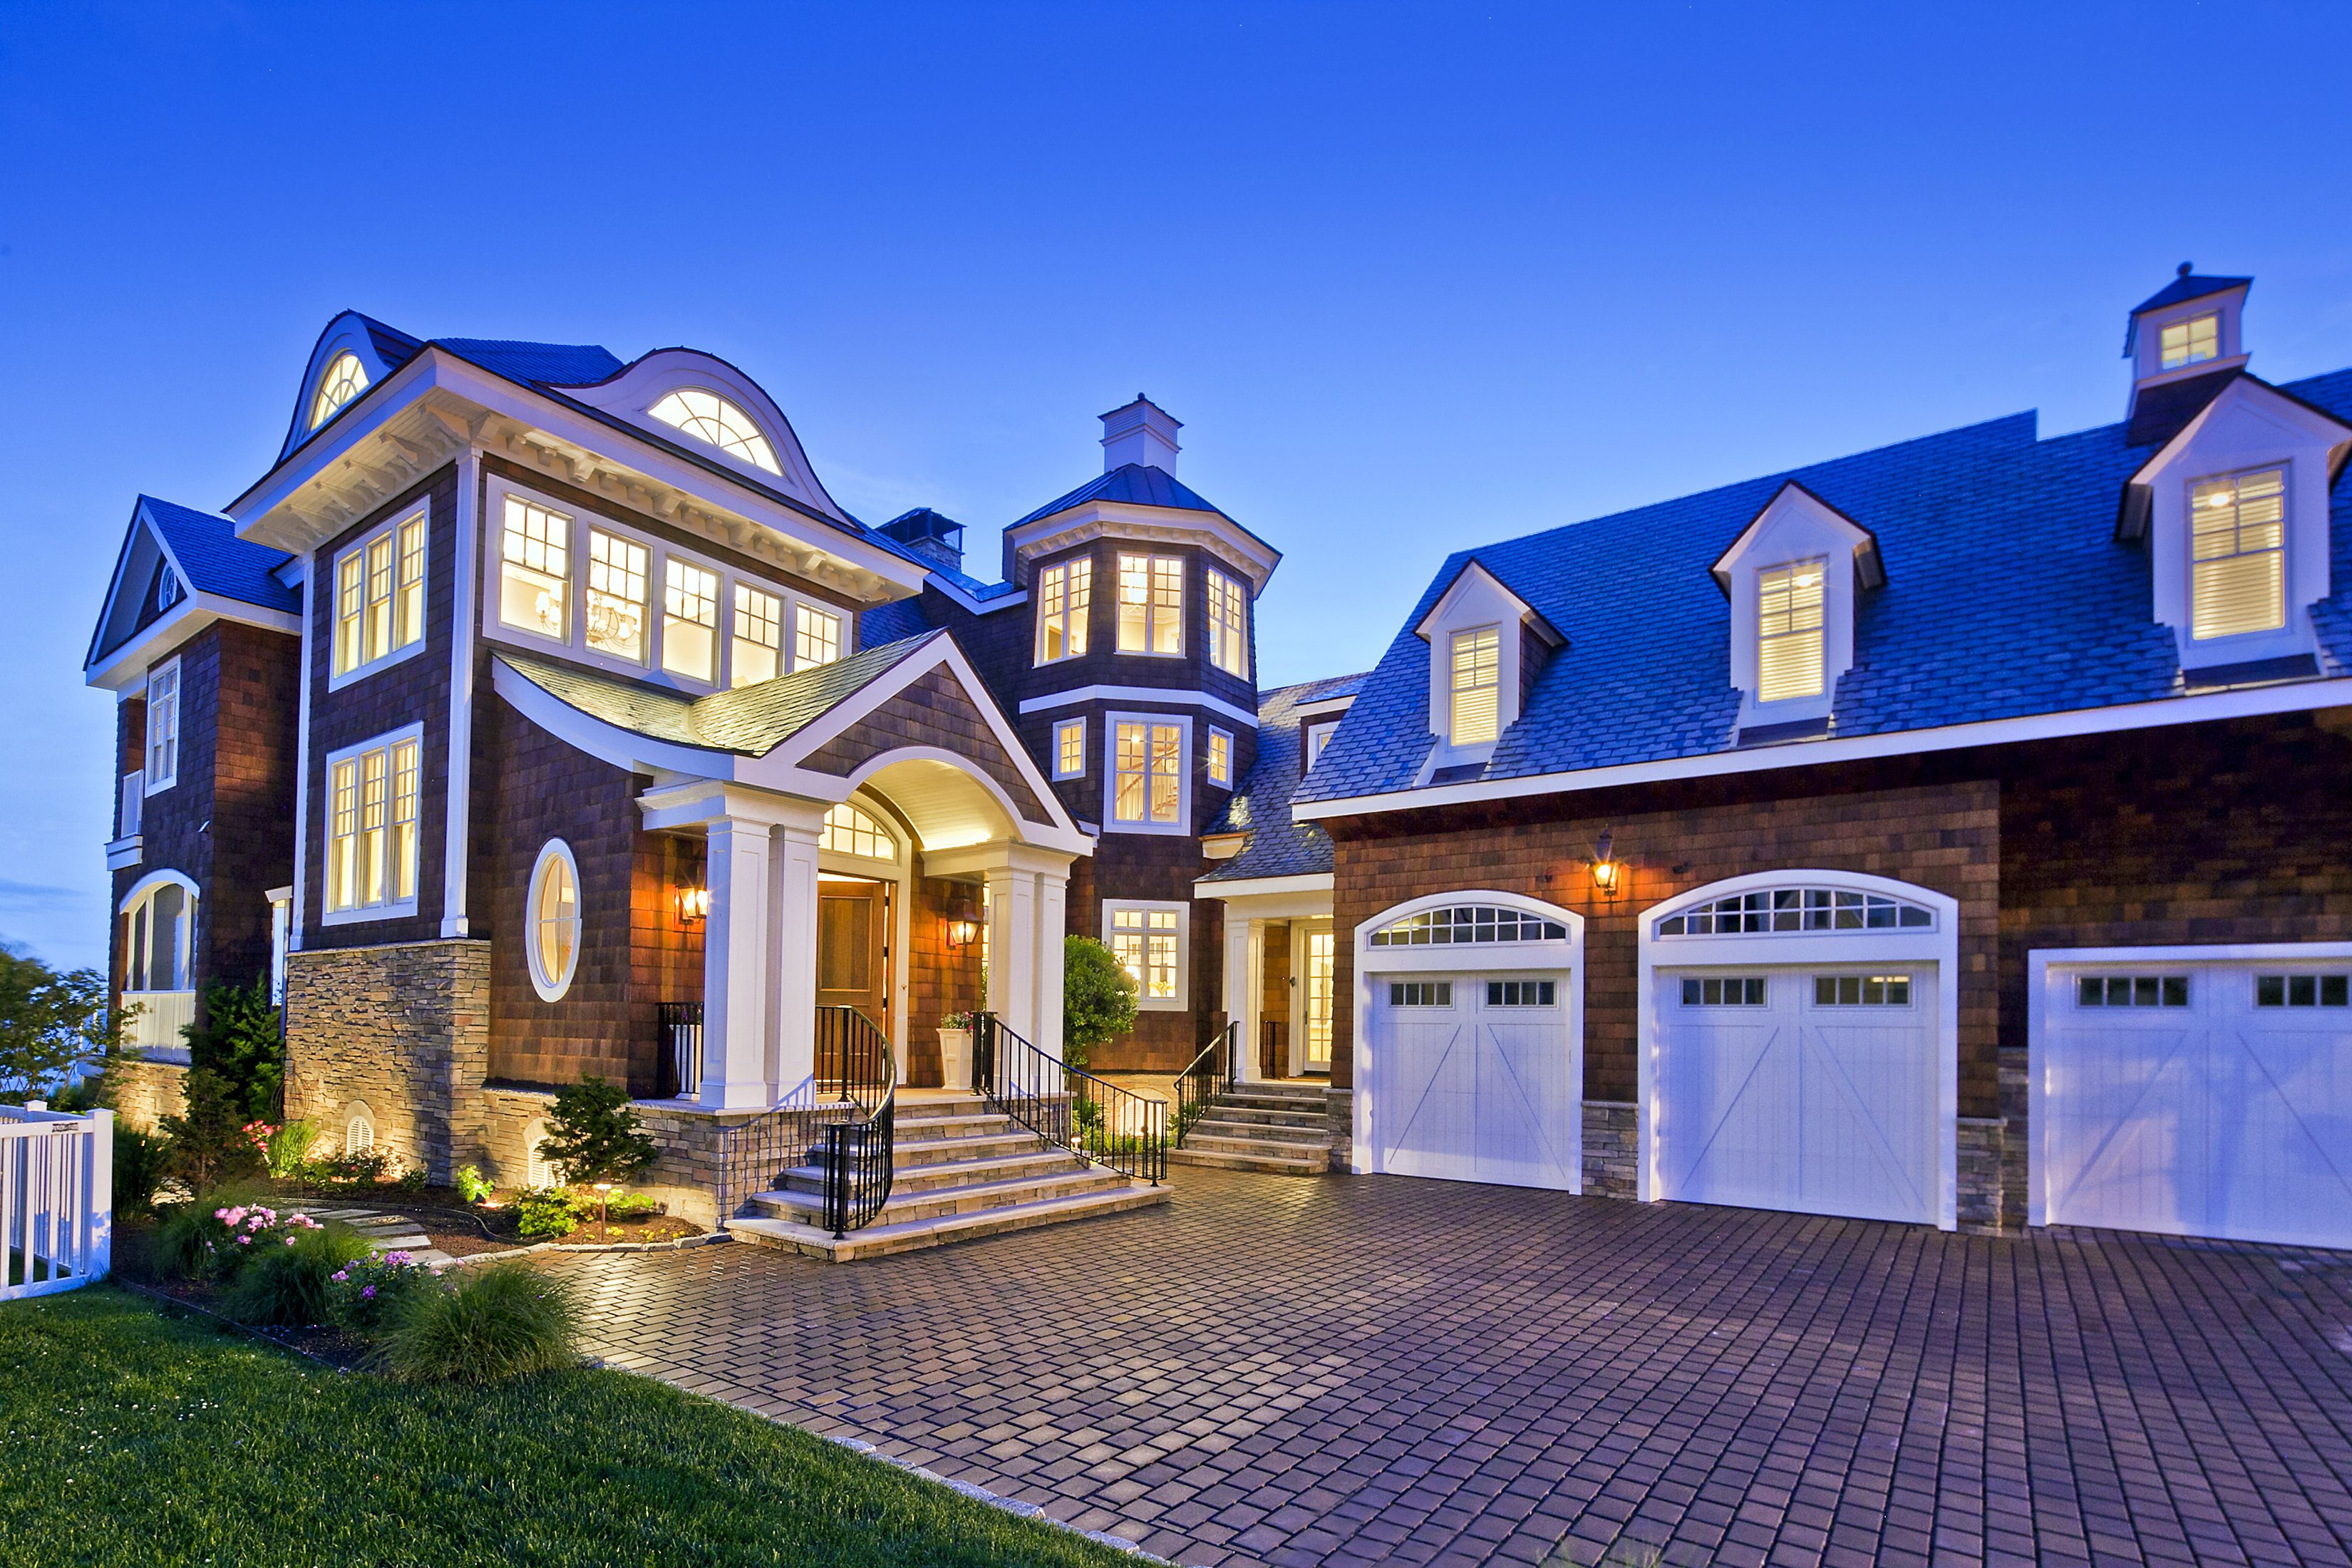 Love this check out more waterfront homes in hgtv